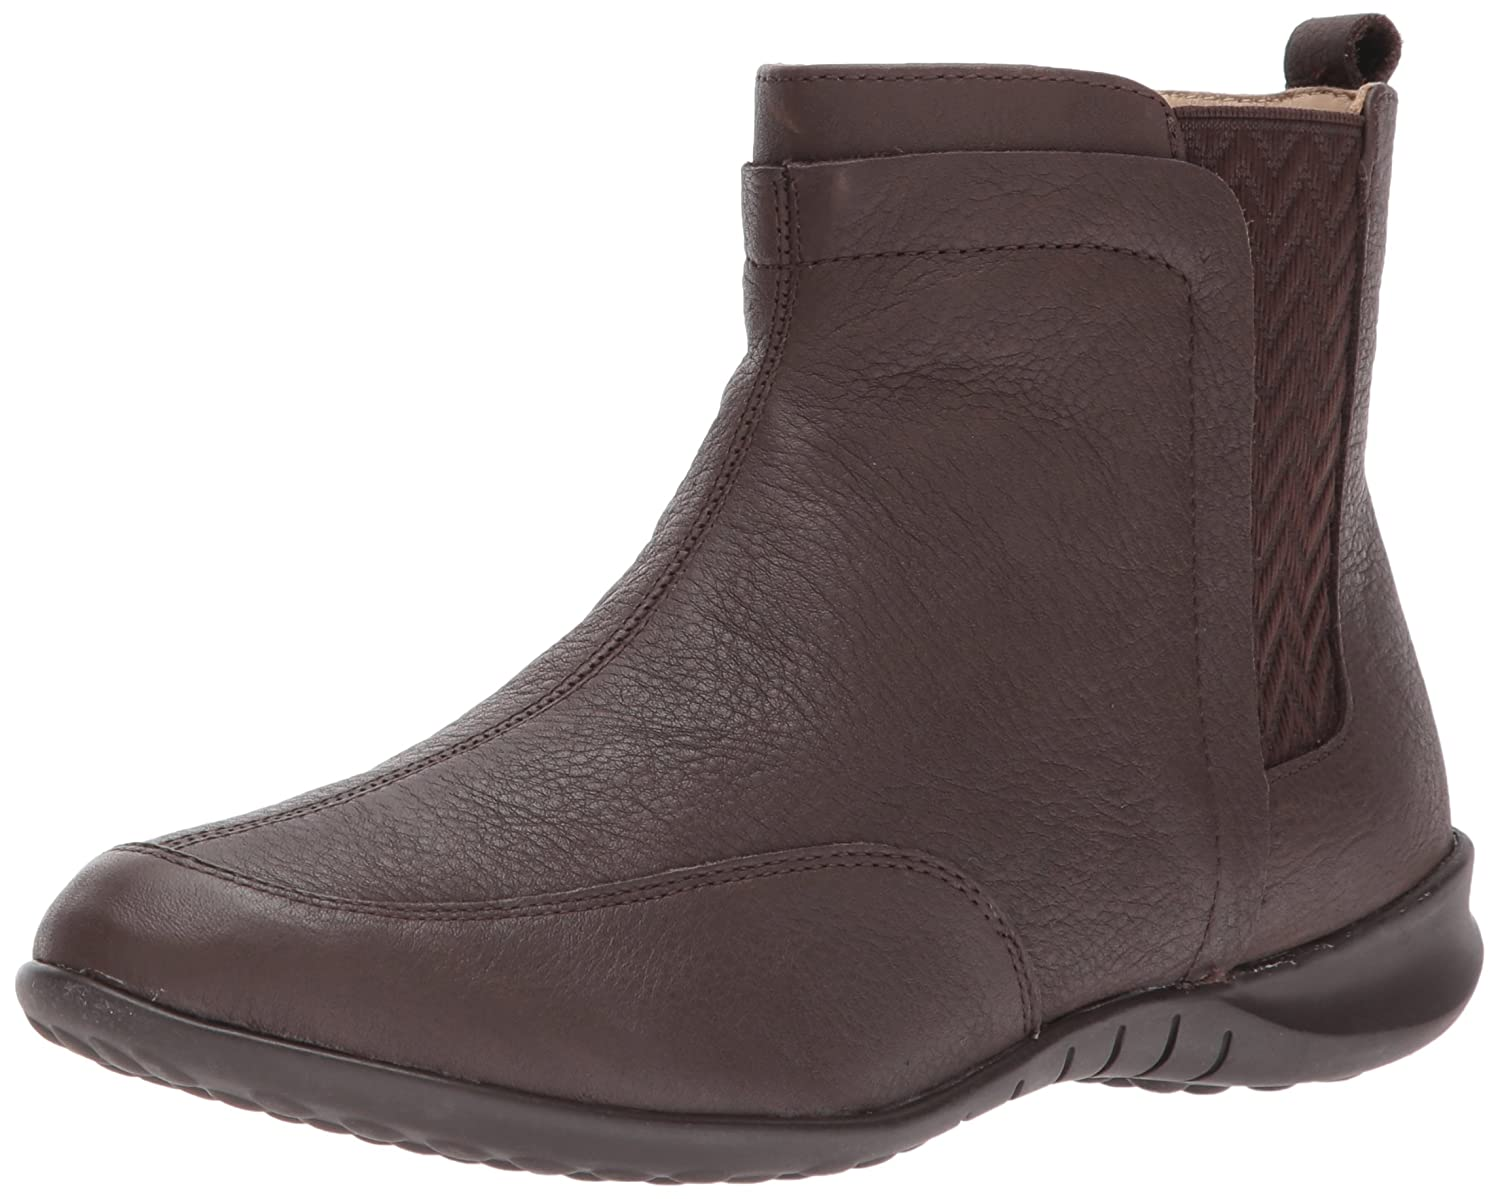 Hush Puppies Women's Lindsi Bria Chelsea Boot B01MRBMAI6 7 W US|Dark Brown Wp